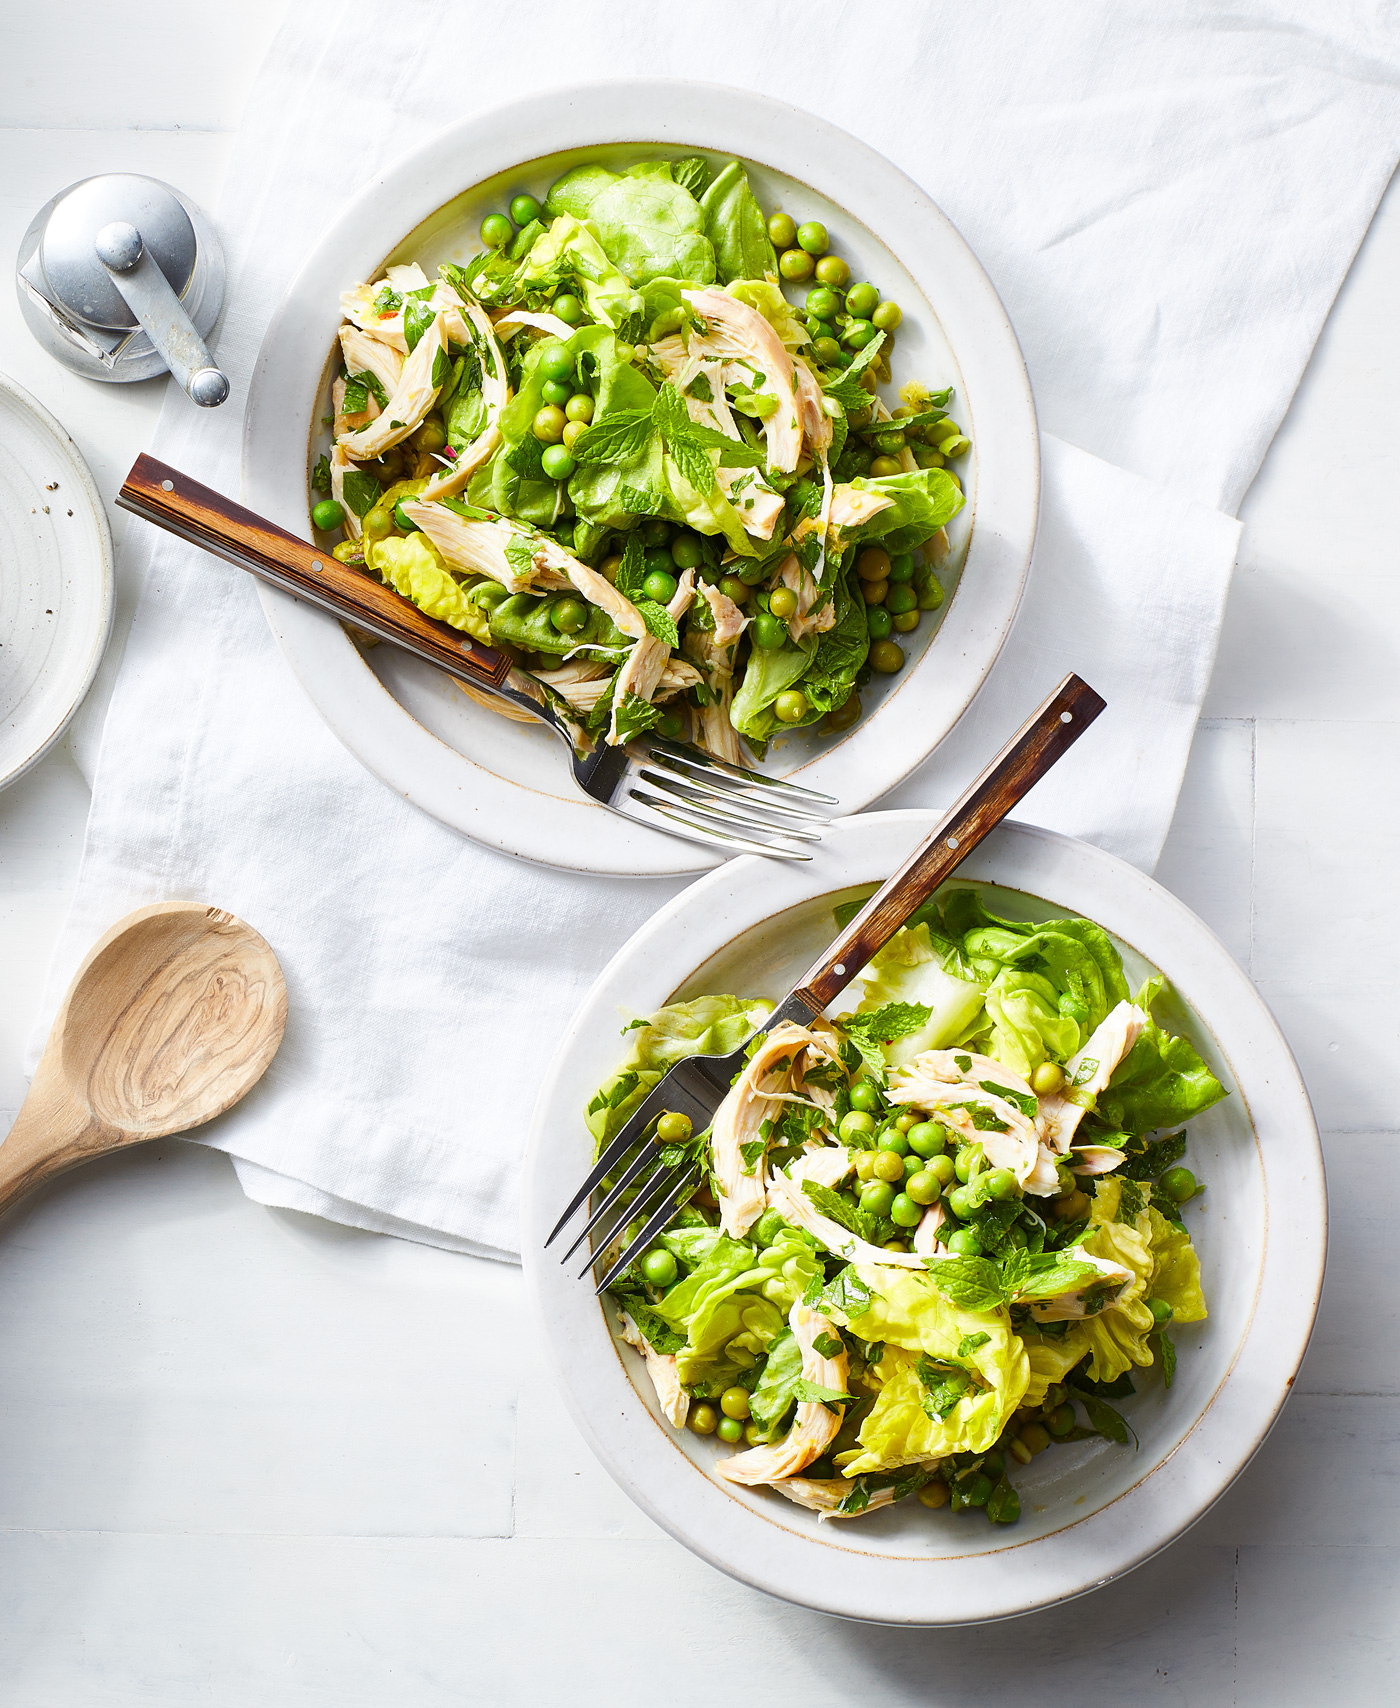 two plates of Green Salad with Chicken and Marinated Peas